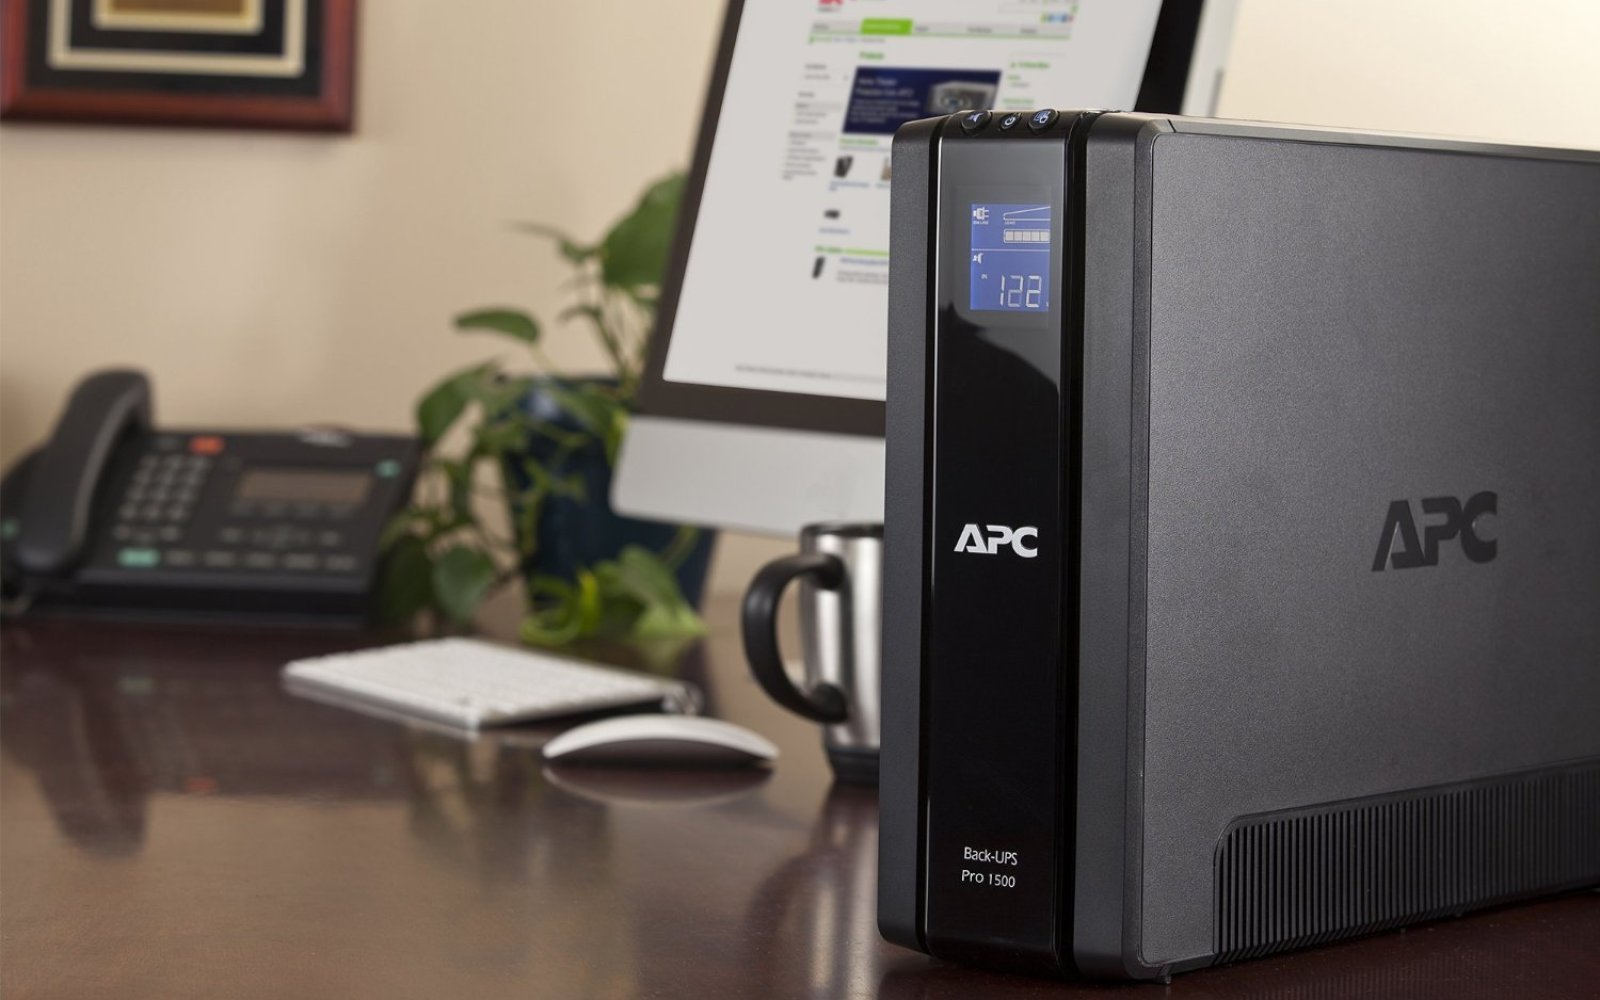 APC Power Saving Back-UPS Pro 1500VA Uninterruptible Power Supply: $150 shipped (orig. $310)